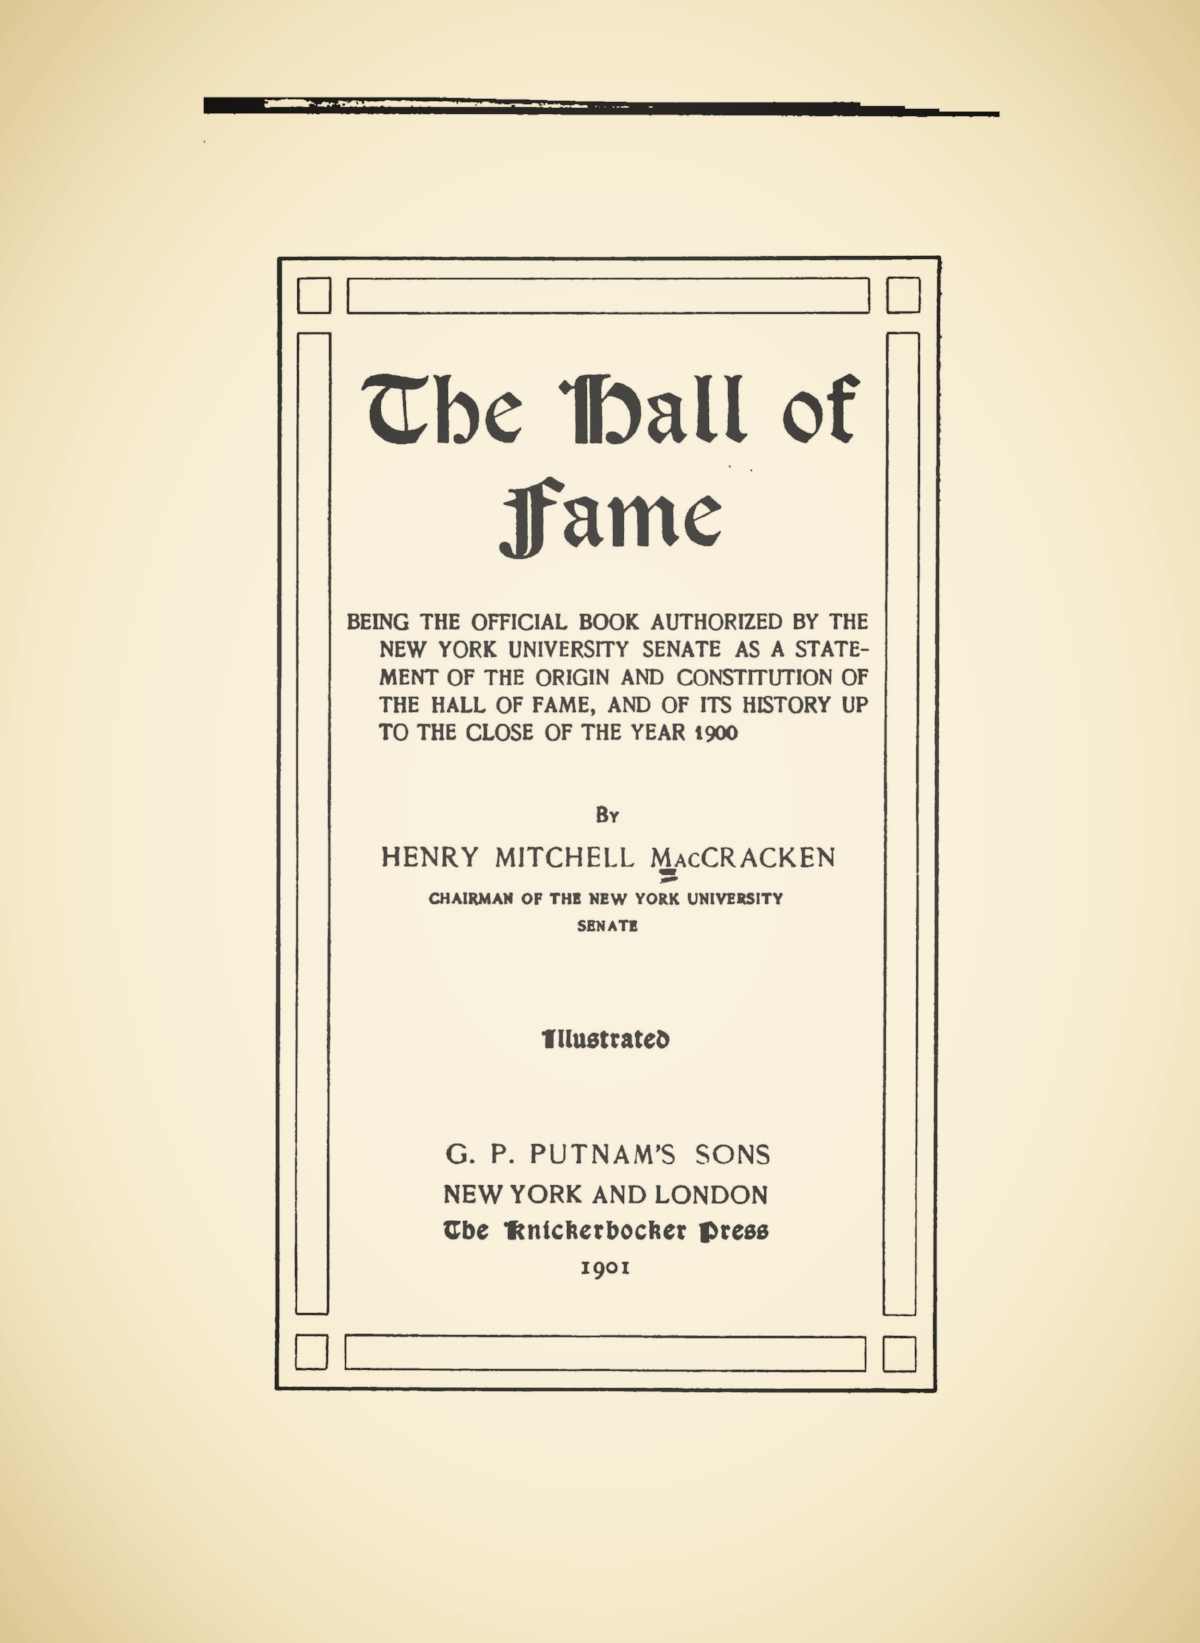 MacCracken, Henry Mitchell, The Hall of Fame Title Page.jpg